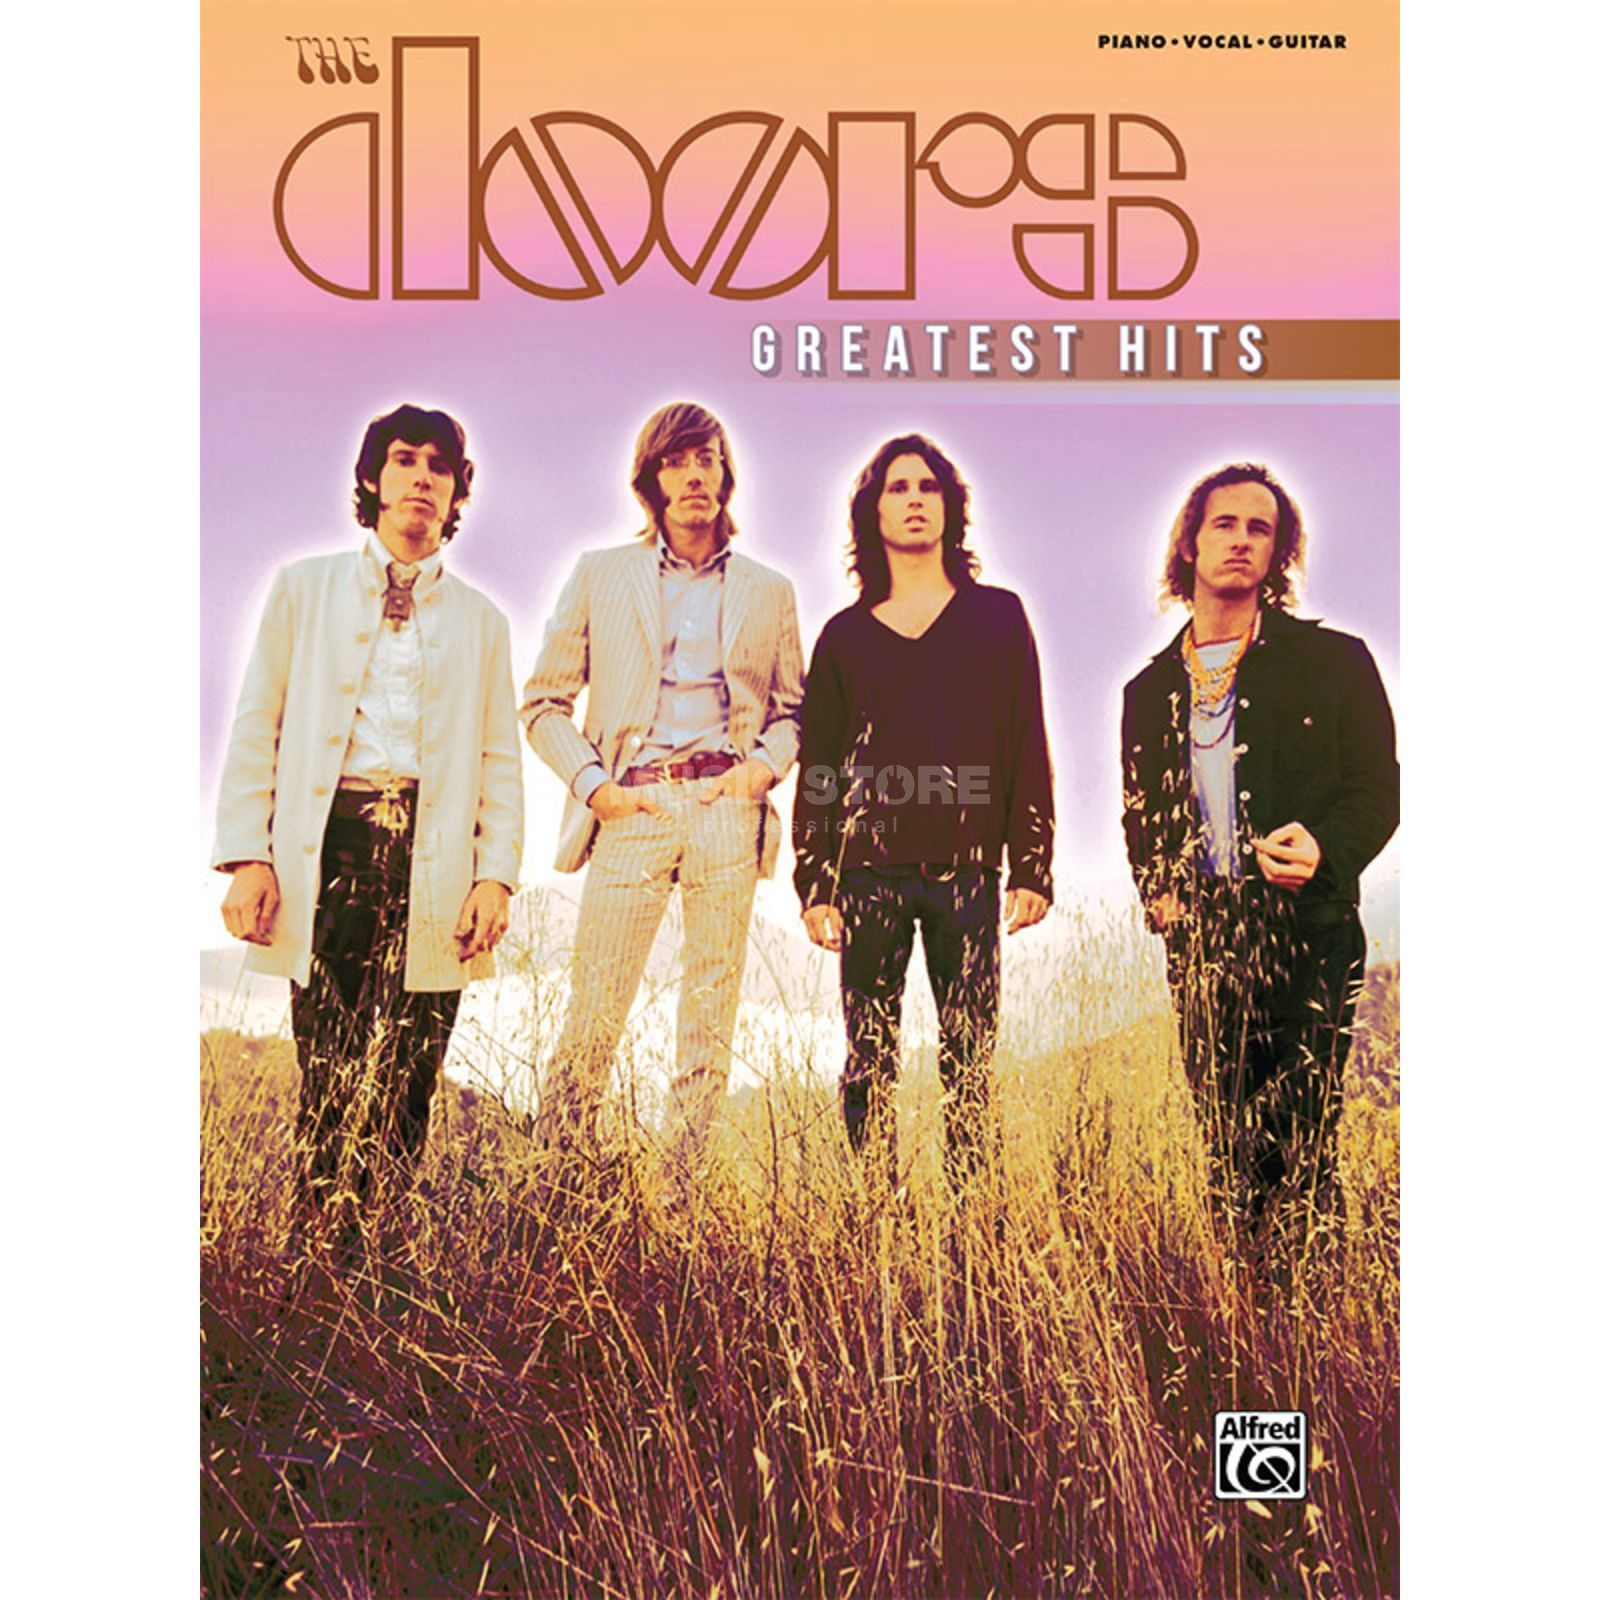 Alfred Music The Doors: Greatest Hits PVG Produktbild